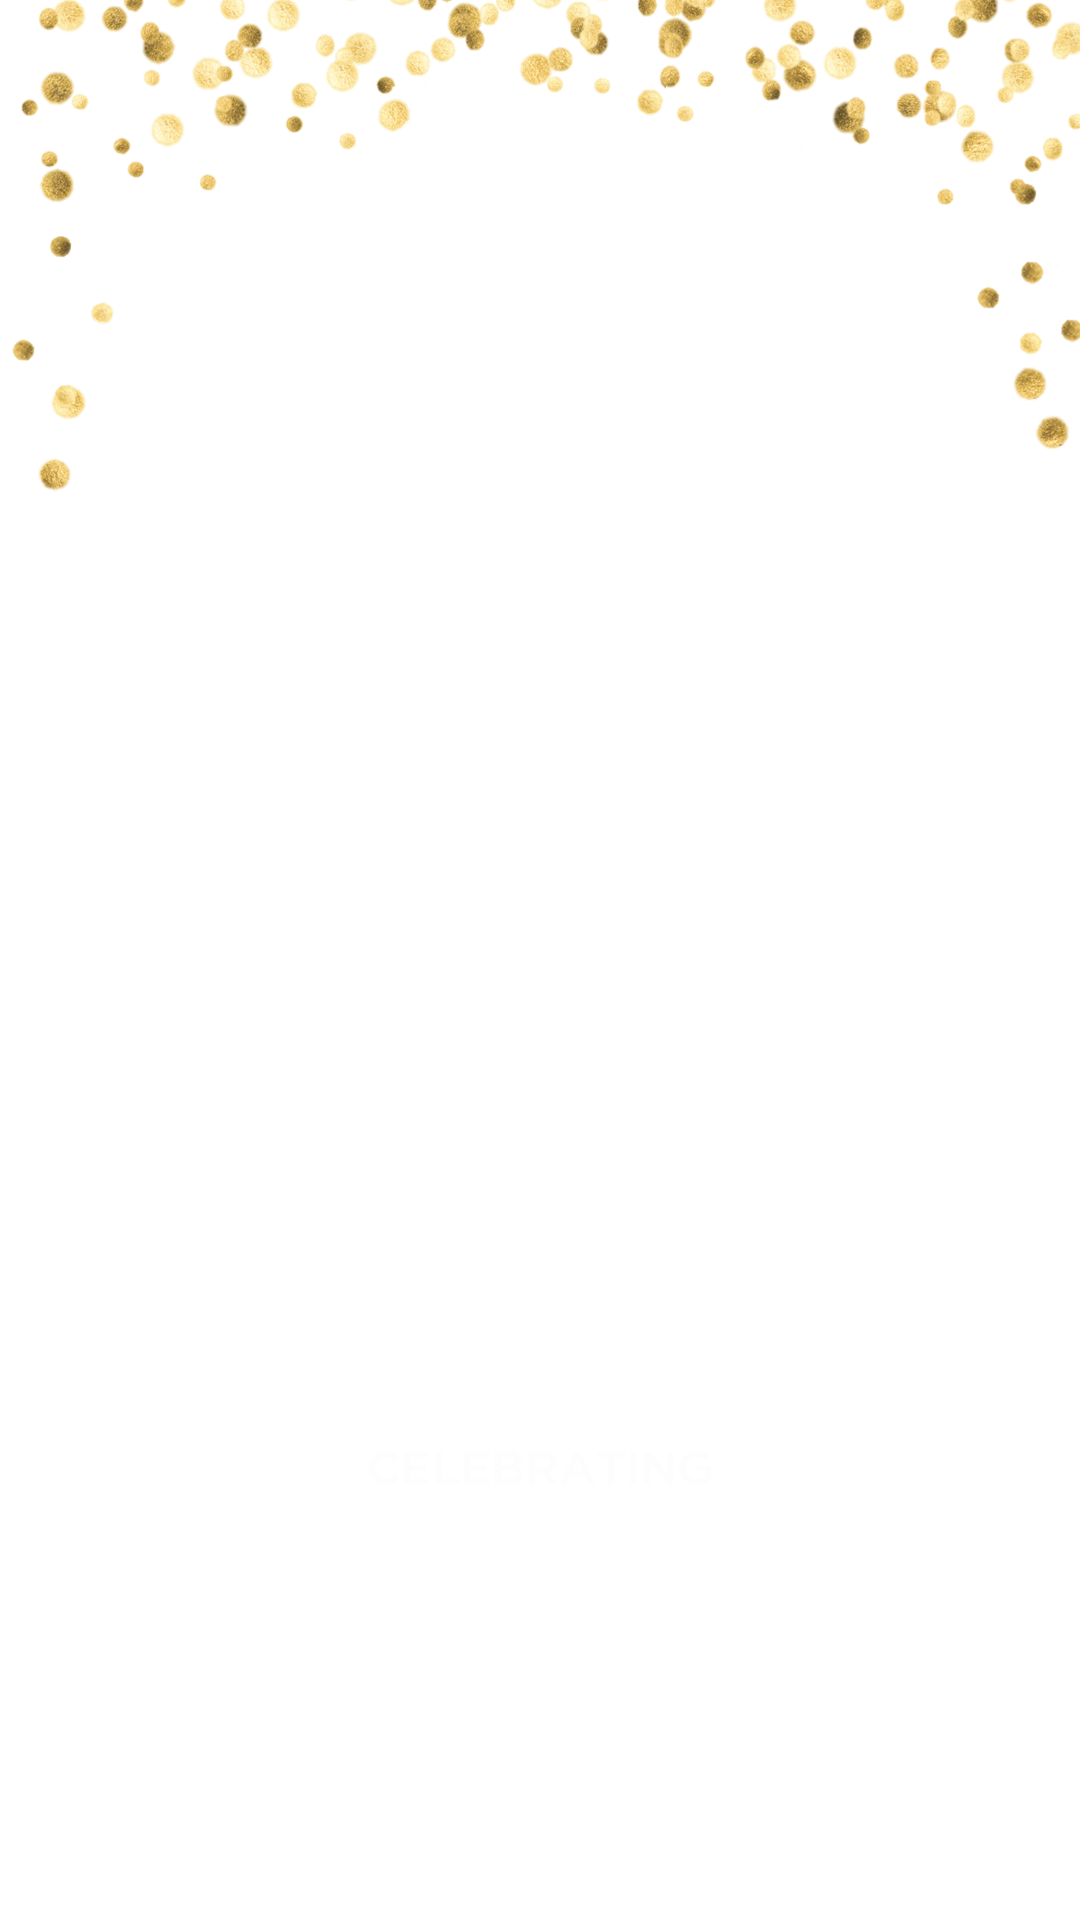 Gold confetti png. Wedding snapchat filter geofilter